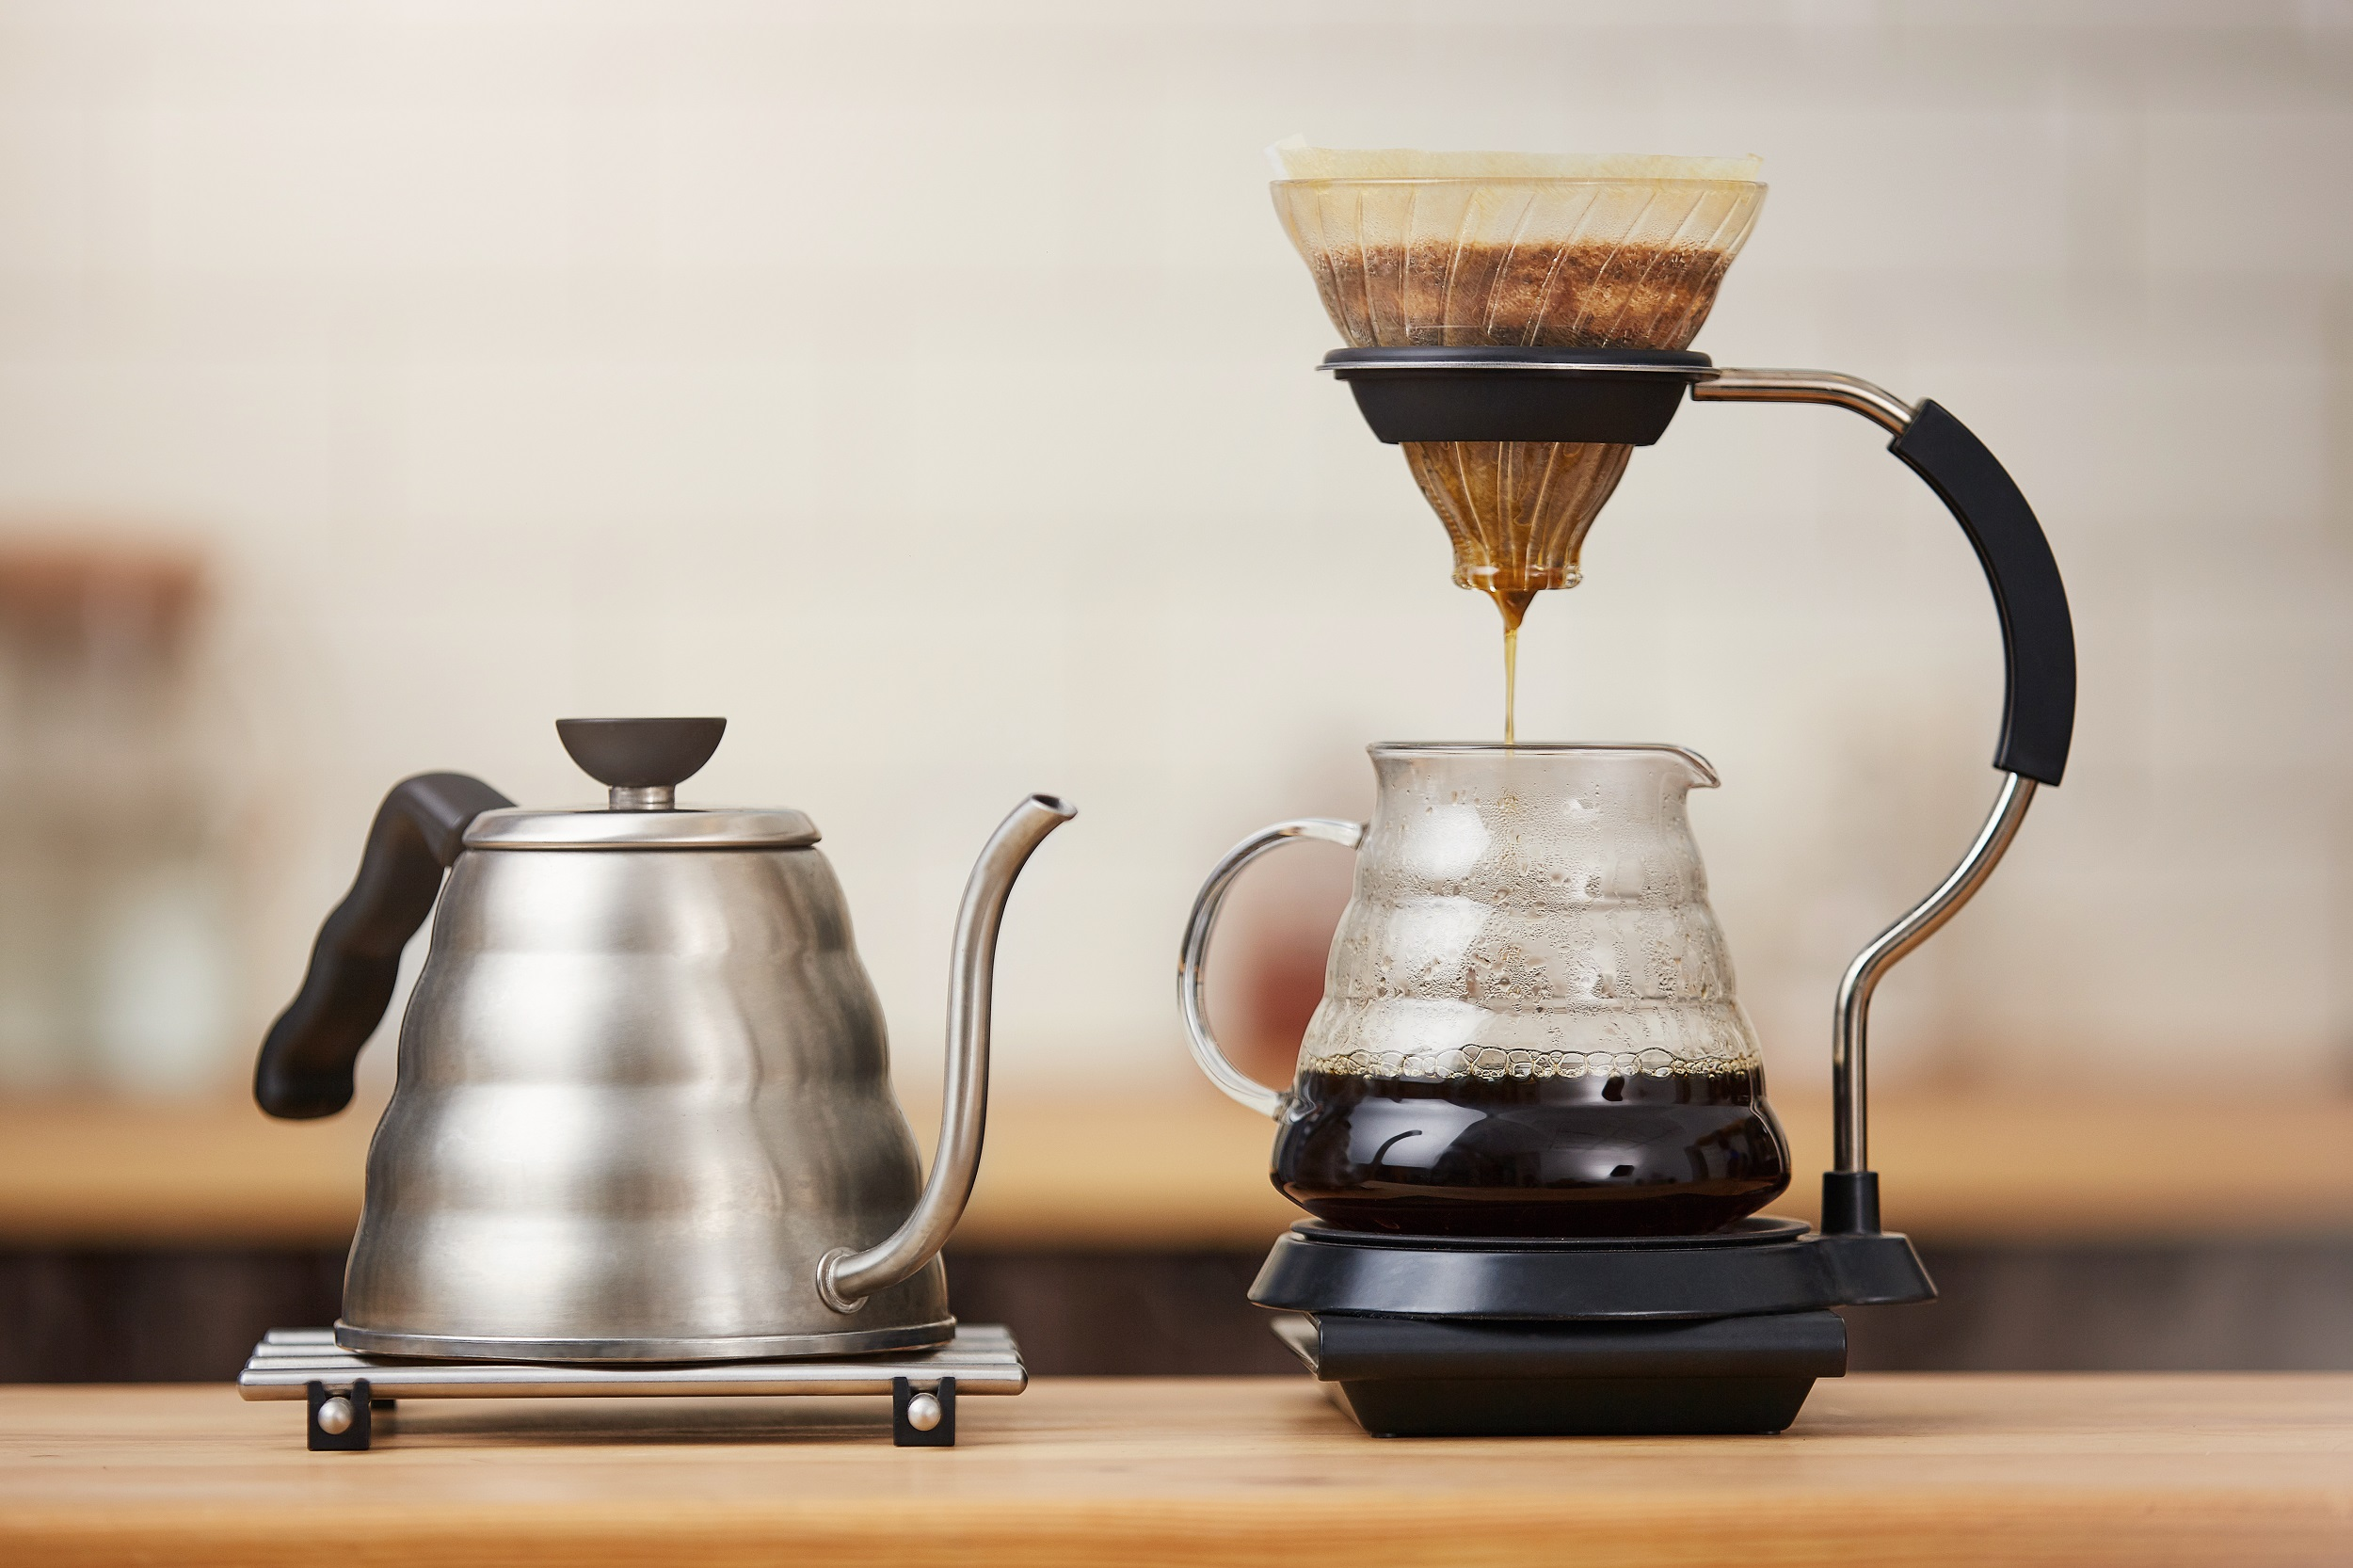 How much coffee to use in a coffee percolator